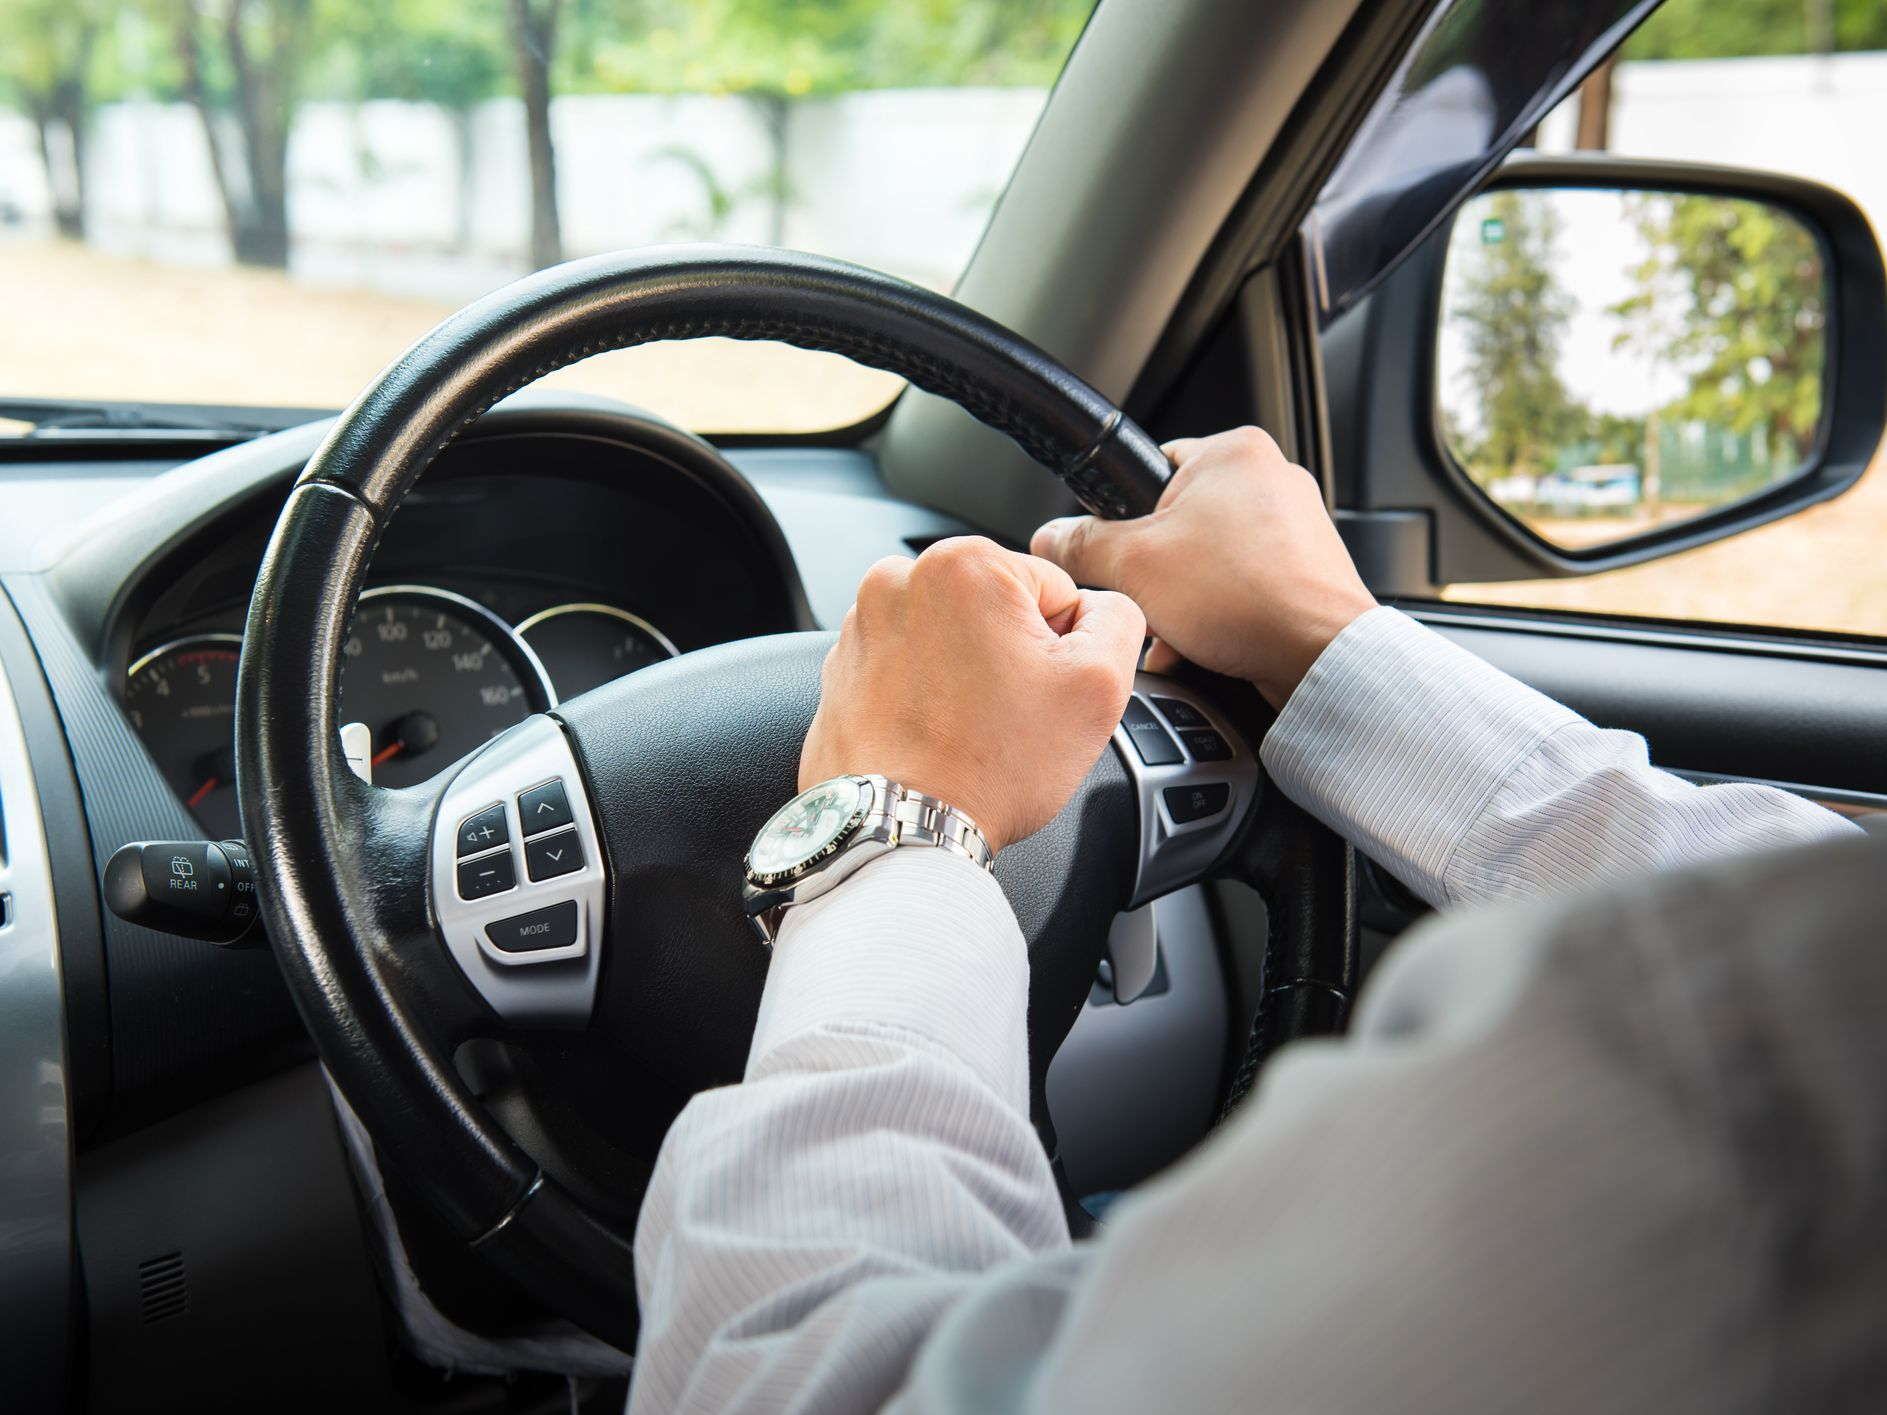 How to Fix a Car Horn That Won't Stop Honking